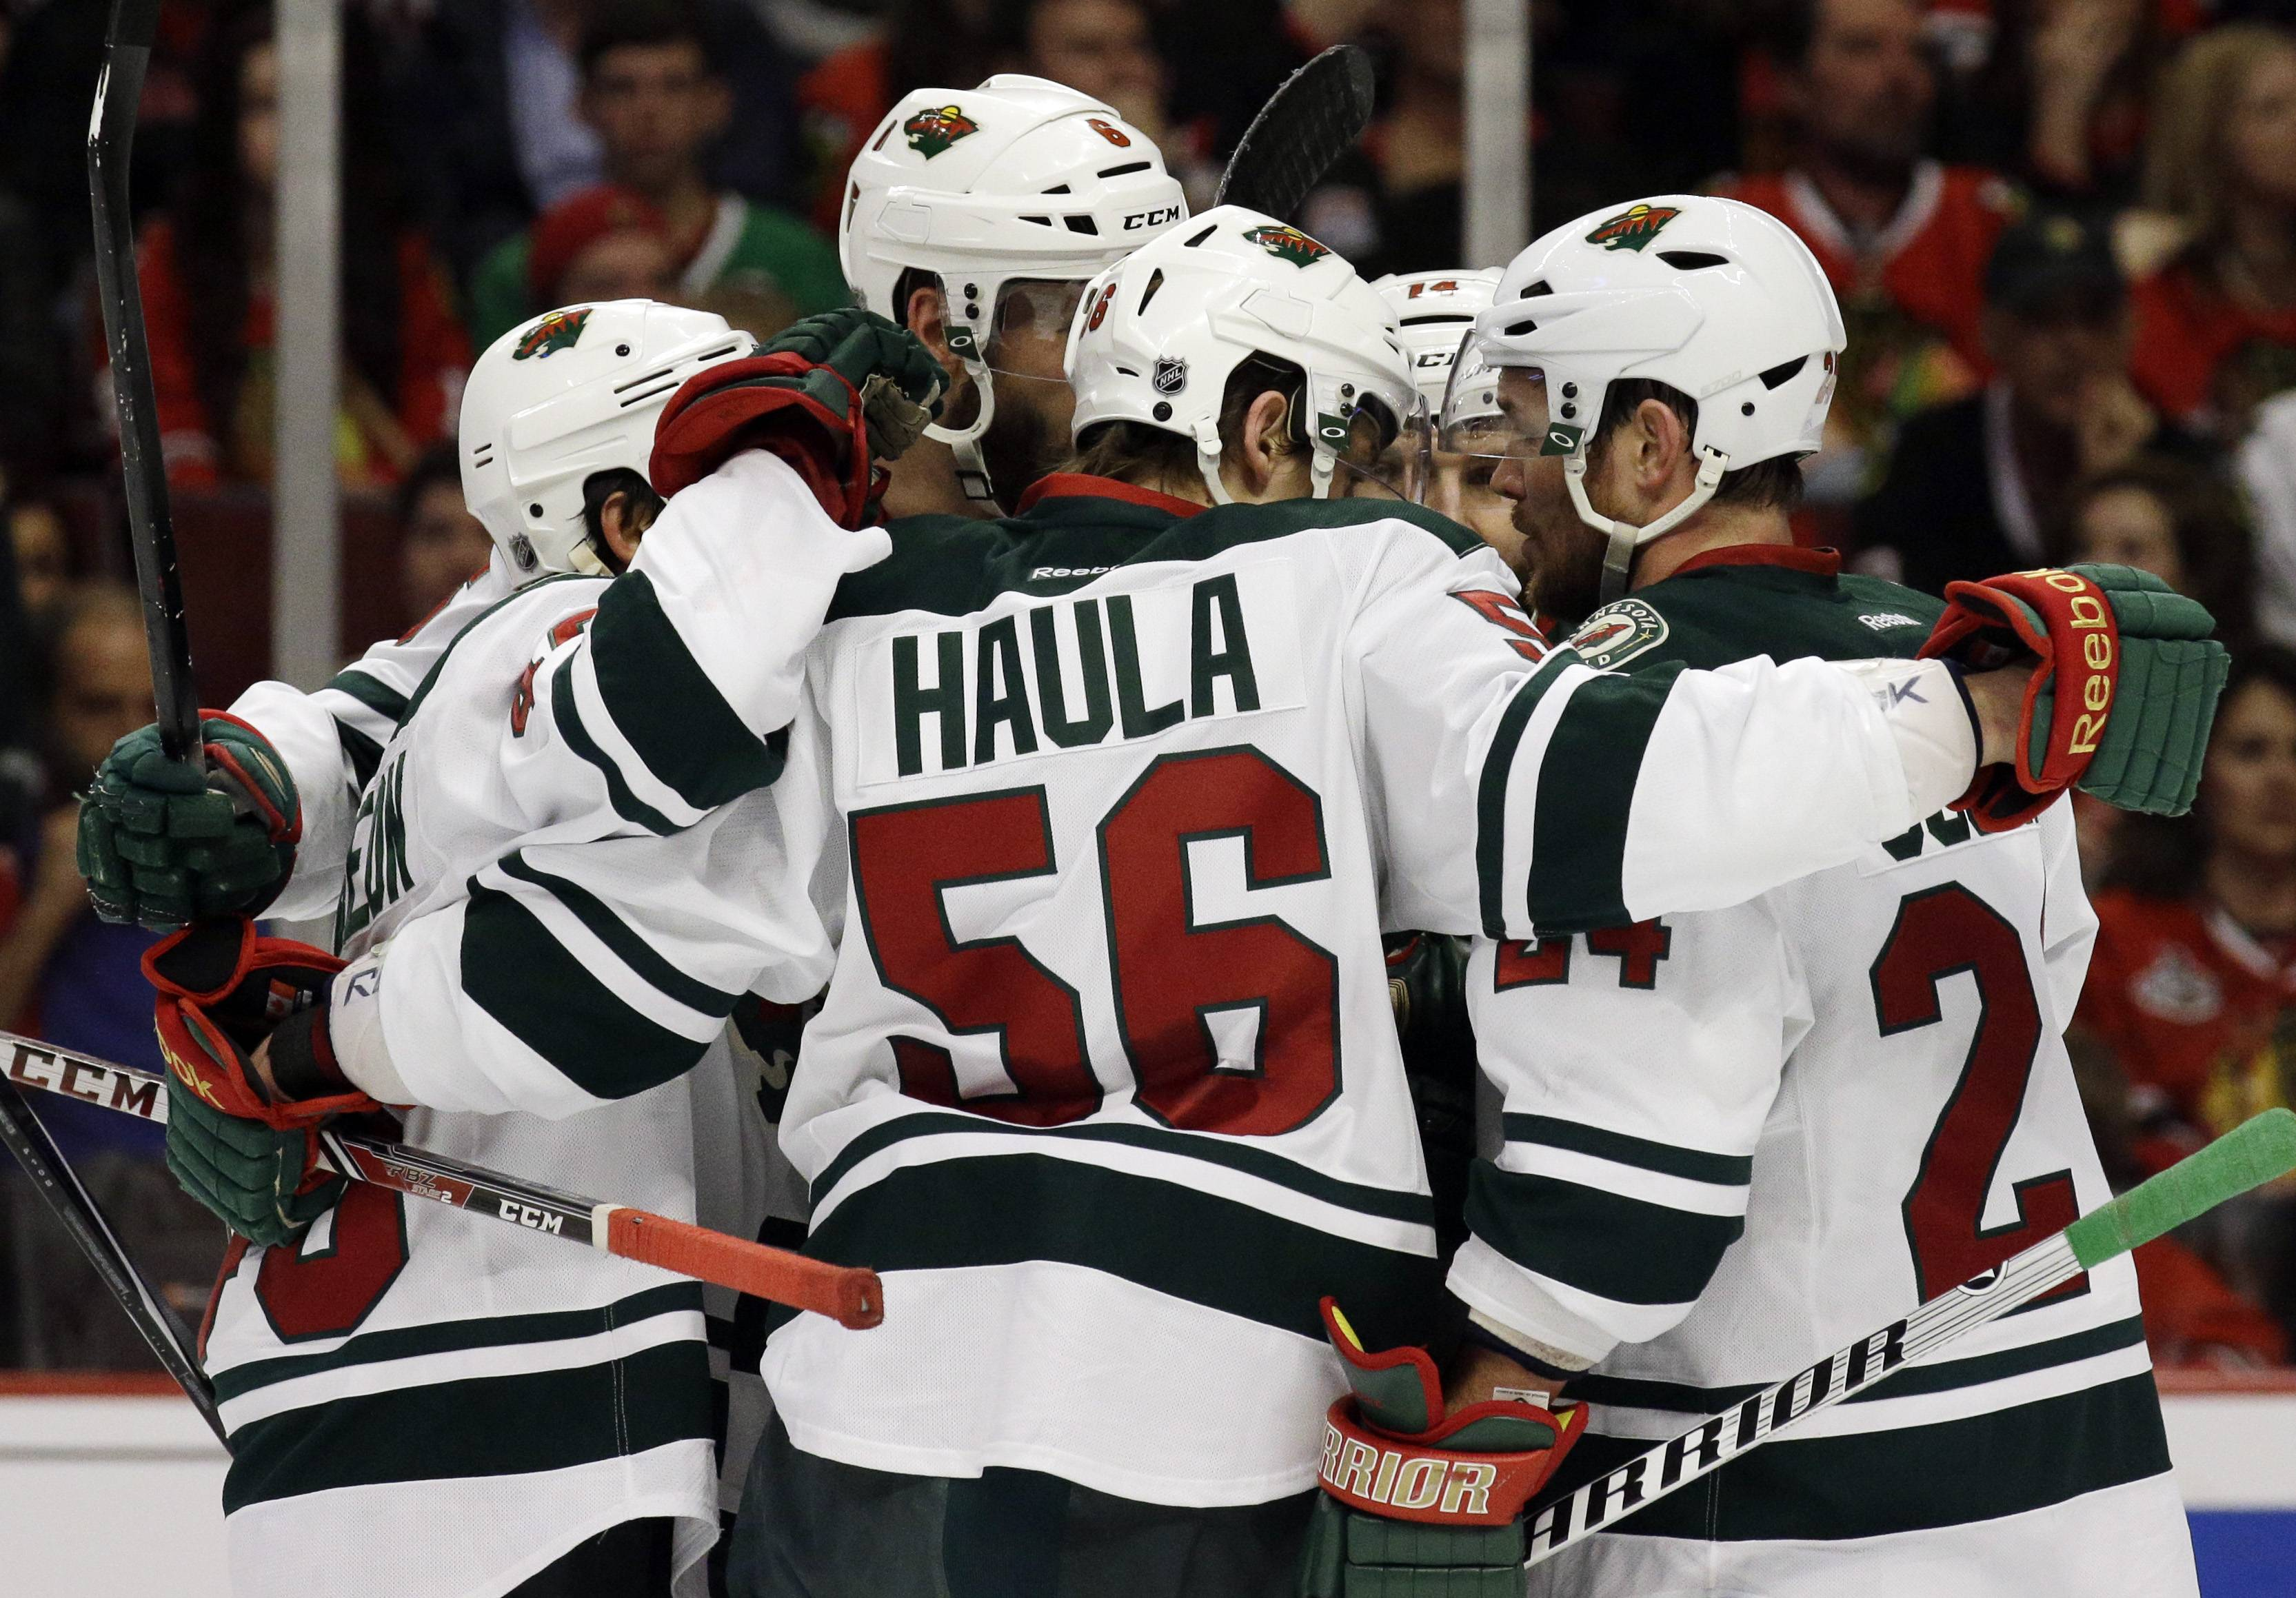 Minnesota Wild's Erik Haula (56) celebrates with teammates after scoring his goal against the Chicago Blackhawks during the first period.